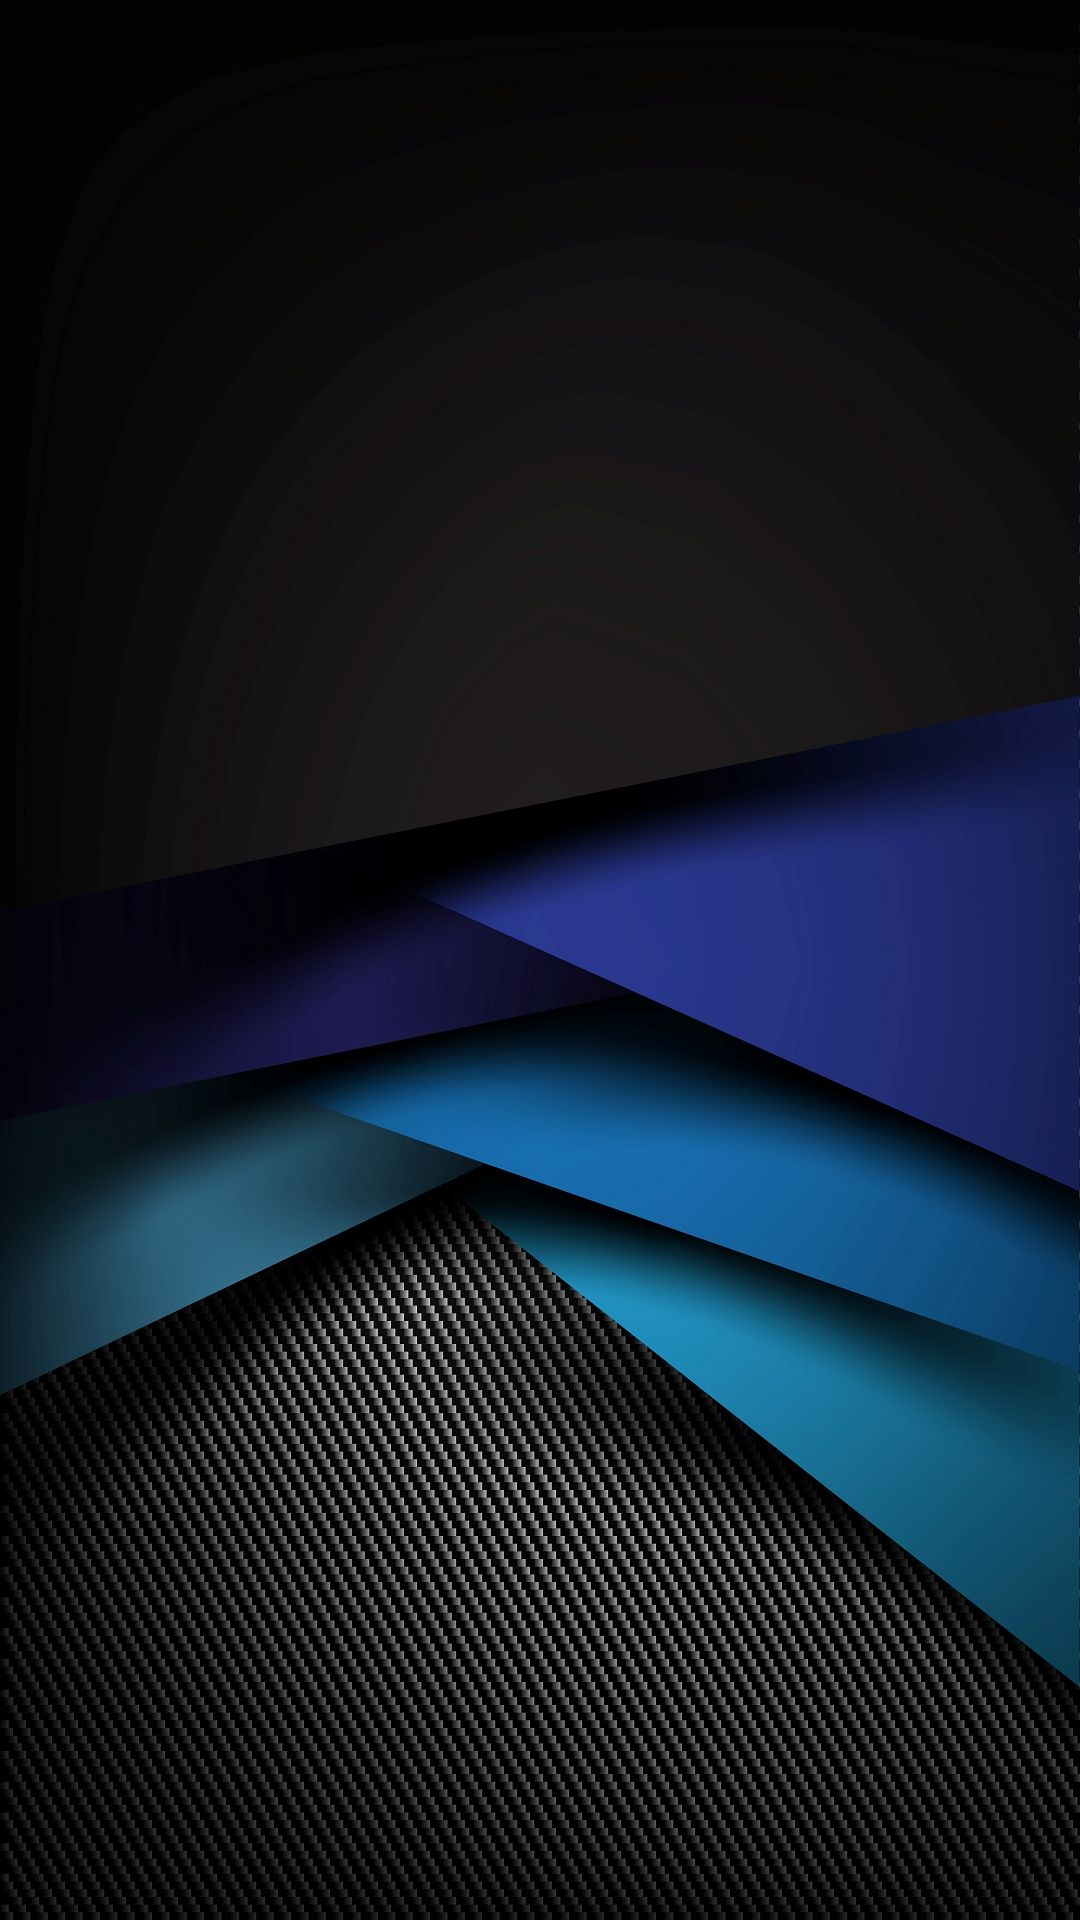 Abstract Shape Design And Pattern Wallpaper In Hd Resolution